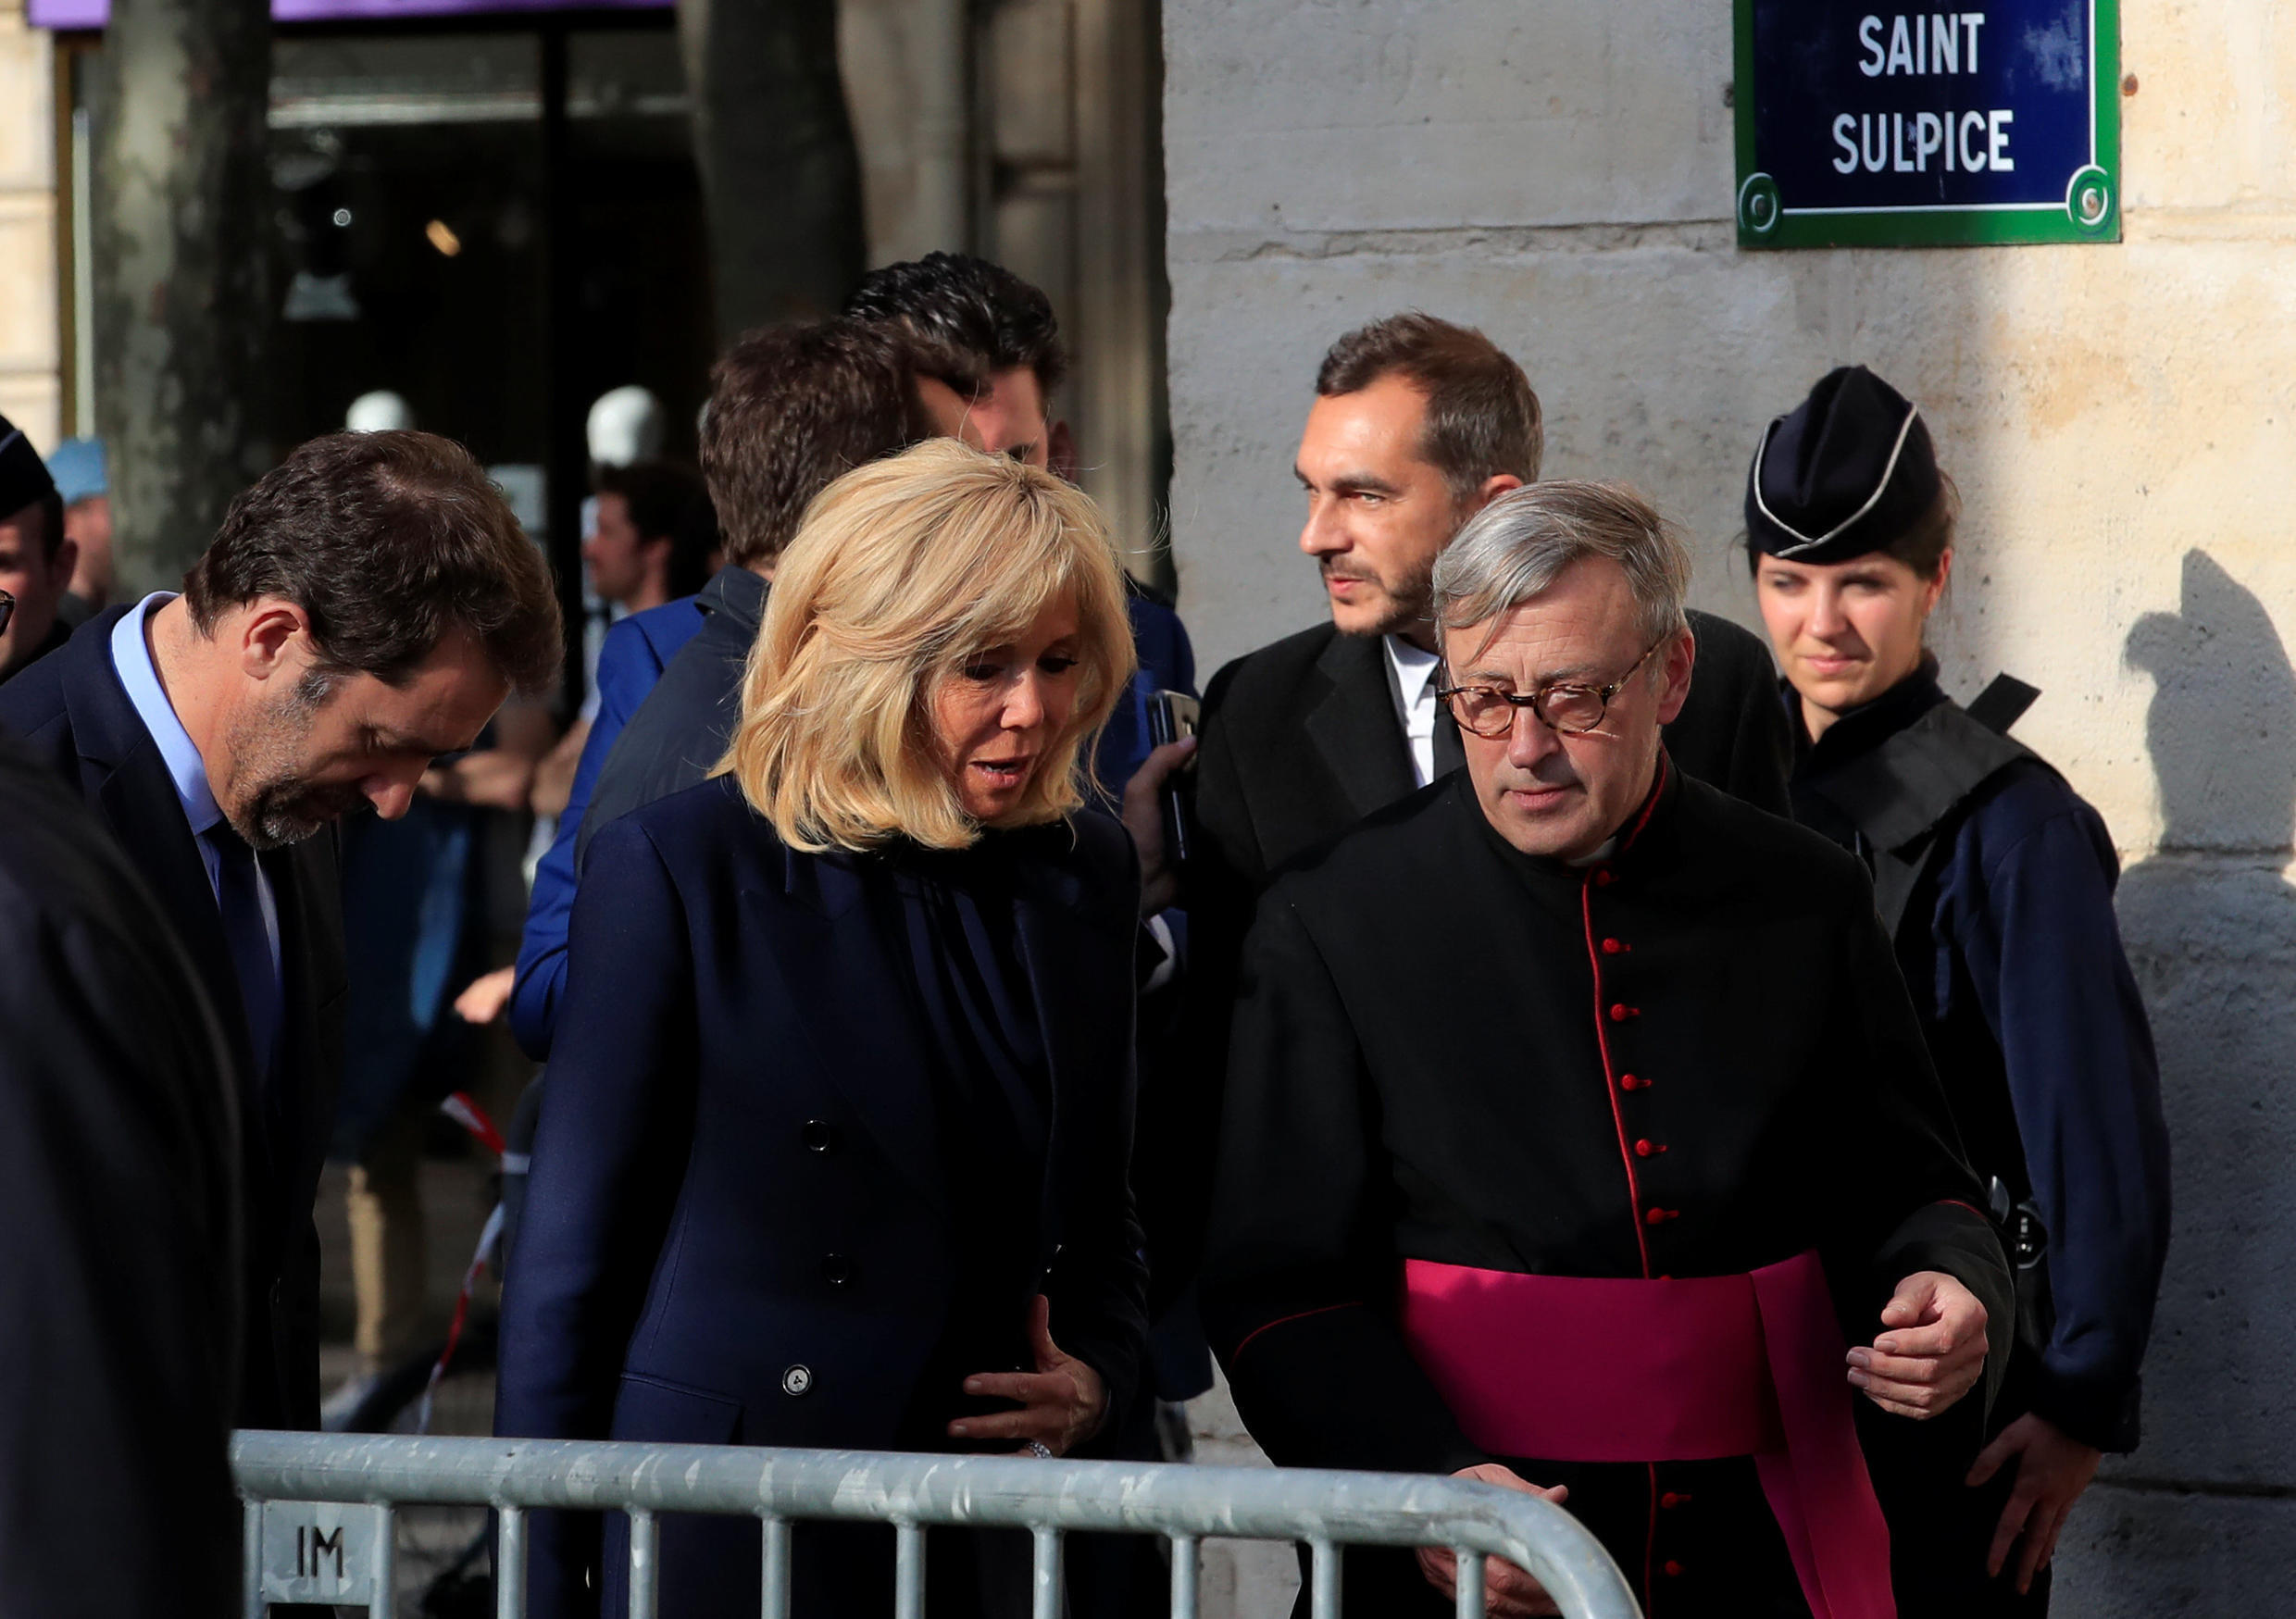 Brigitte Macron, wife of French President Emmanuel Macron, arrives to attend a mass at Saint Sulpice church two days after a massive fire devastated large parts of the gothic structure of Notre-Dame Cathedral in Paris, France, April 17